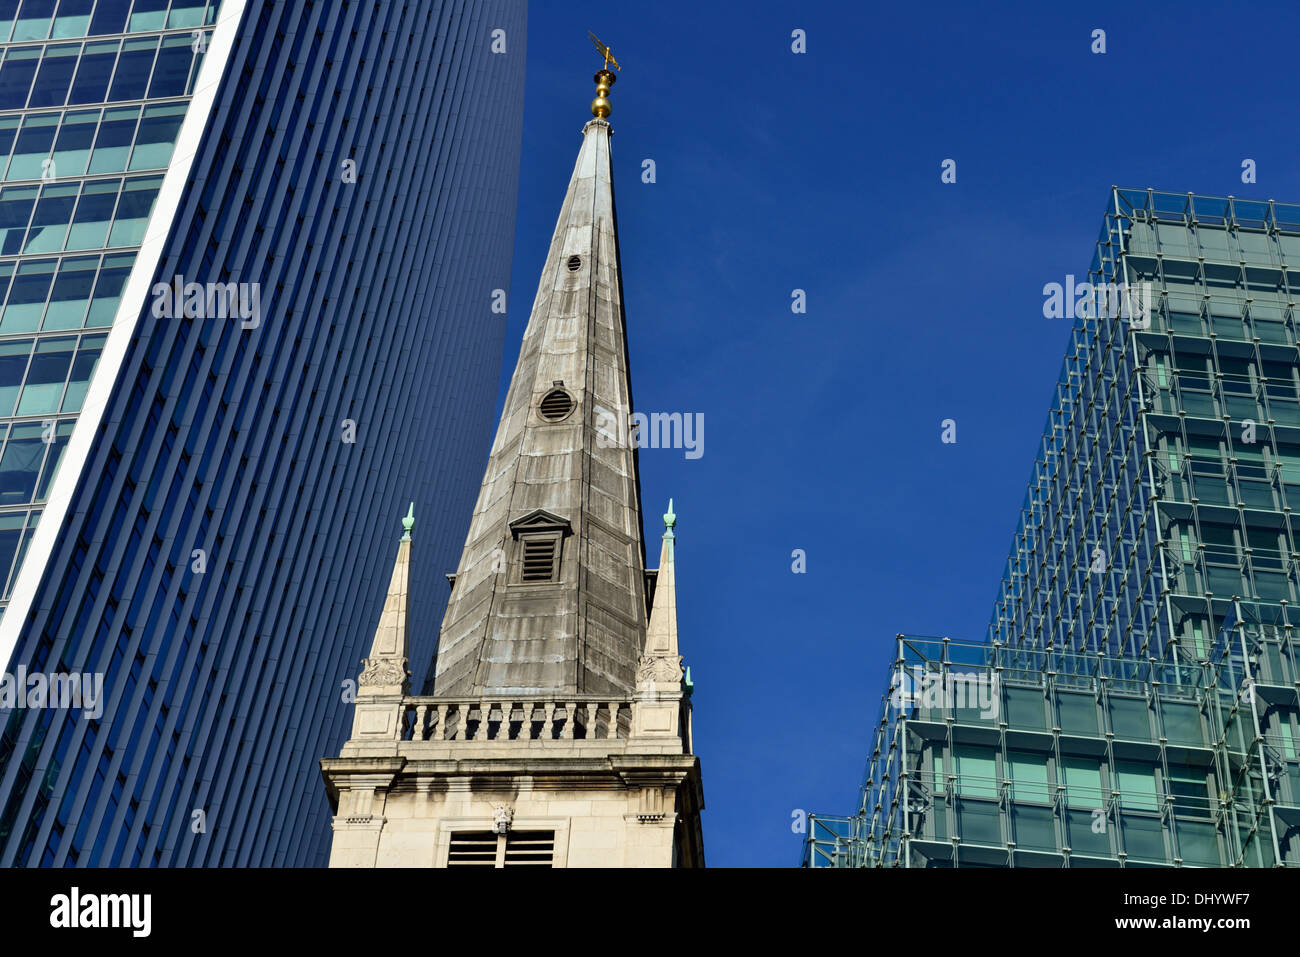 Church of St Margaret Pattens with 20 Fenchurch St and Plantation Place, Eastcheap, City of London, London EC3P, United Kingdom - Stock Image